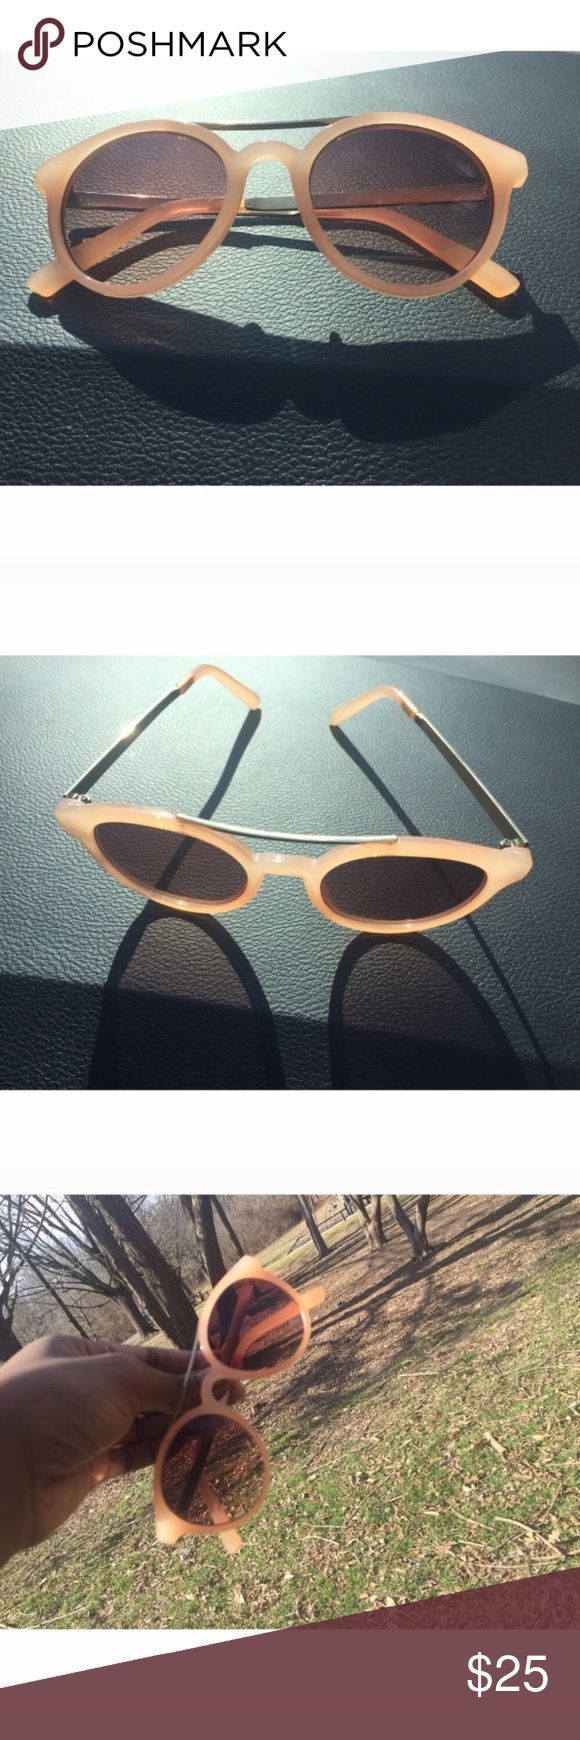 Ann Taylor Loft Peach UV Sunglasses Ladies these are sophisticated sexy x10!!! These hot off the press Ann Taylor Loft Peach mimosa, Lucite and metal sunglasses will make any out fit better!!!! UVA Sunglasses LOFT Accessories Sunglasses